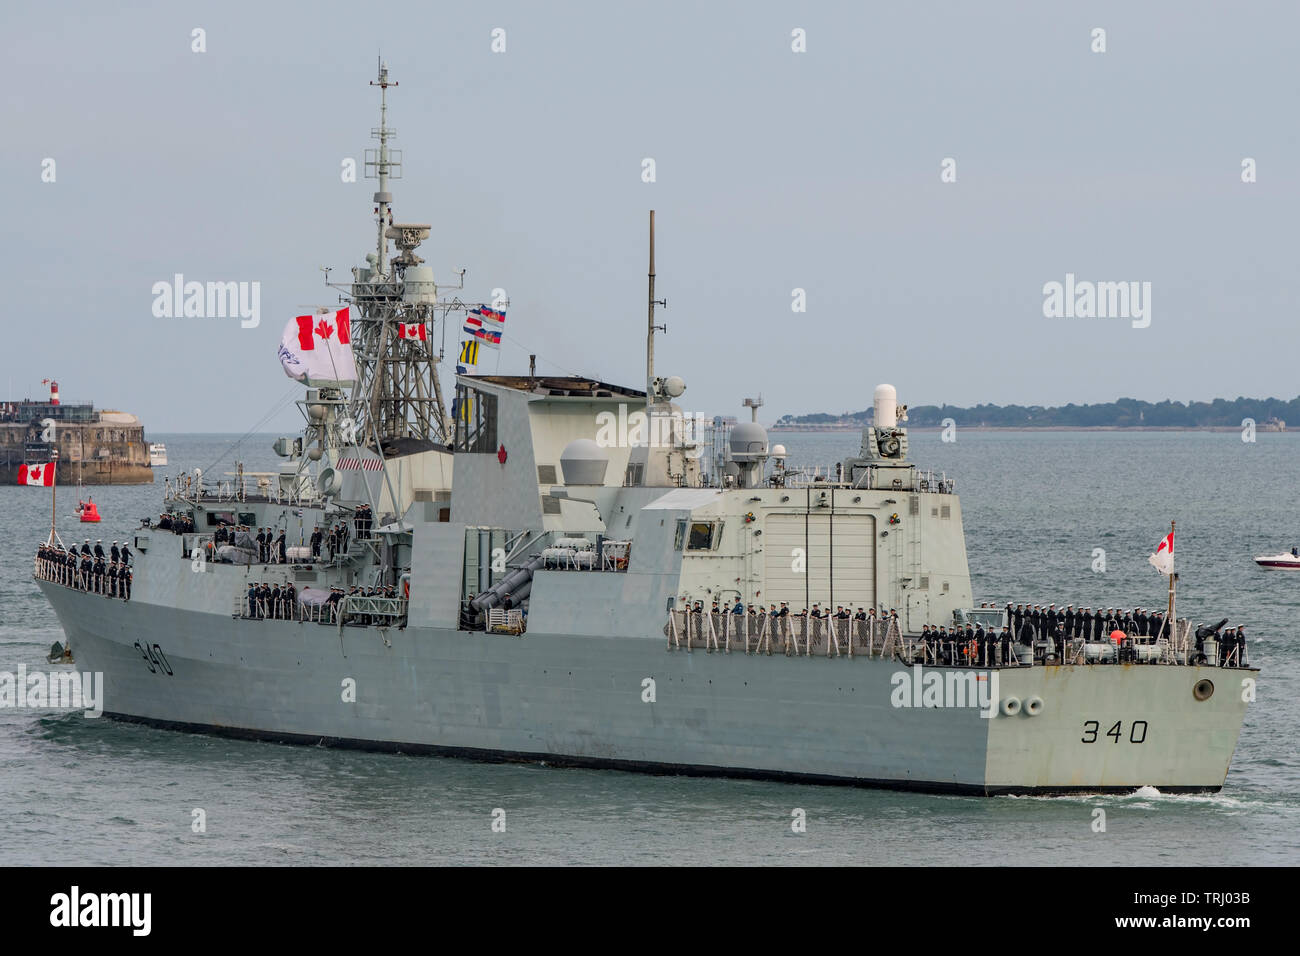 The Royal Canadian Navy warship HMCS St John's leaves